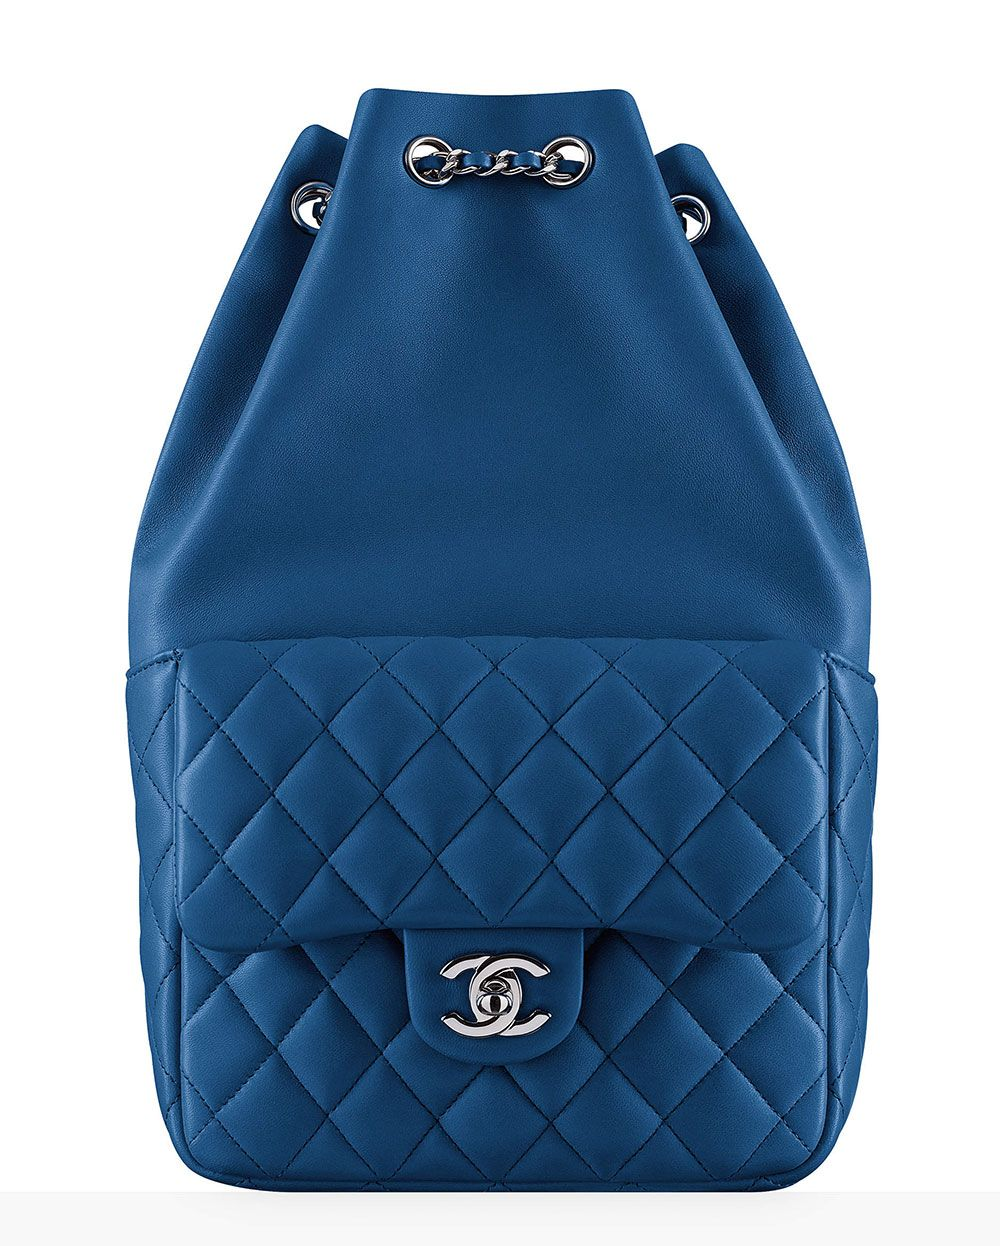 157244df5c02 Chanel Releases Its Biggest Lookbook Ever for Pre-Collection Spring 2017;  We Have All 115 Bags and Prices - PurseBlog